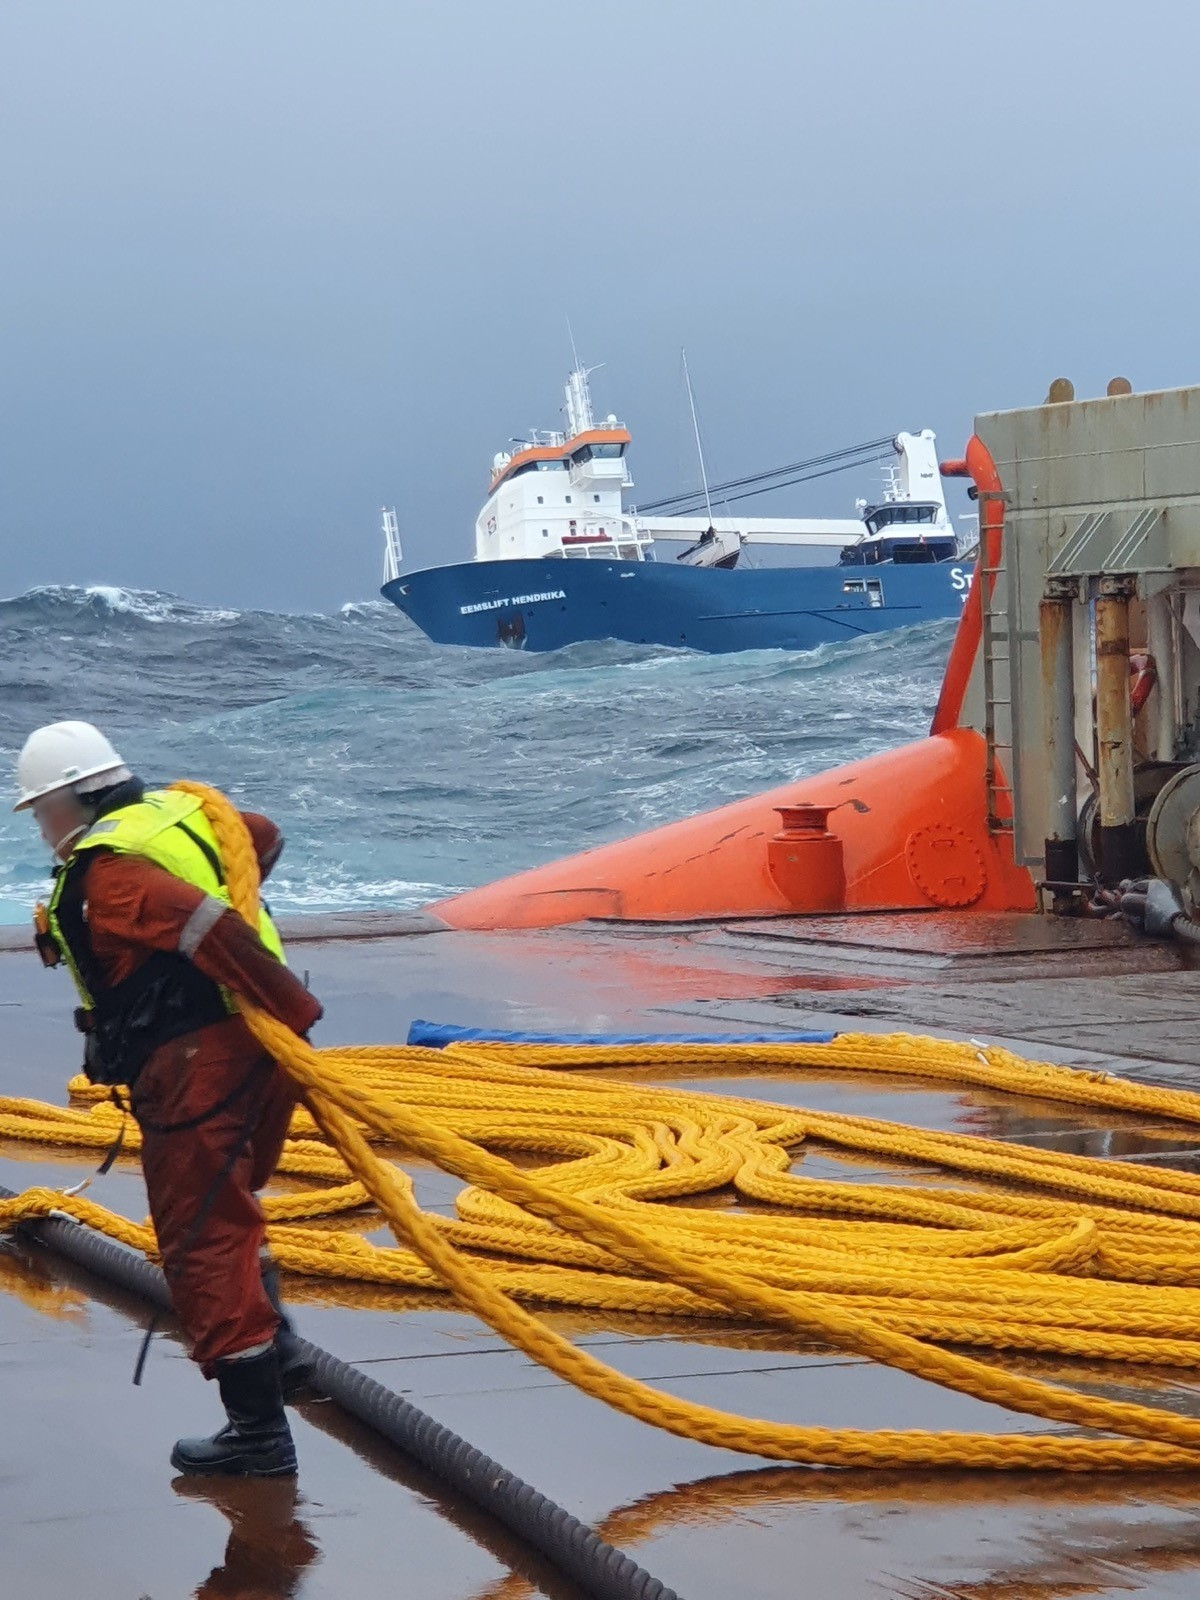 Ropes from OTS in the rescue operation of  cargo ship in distress.